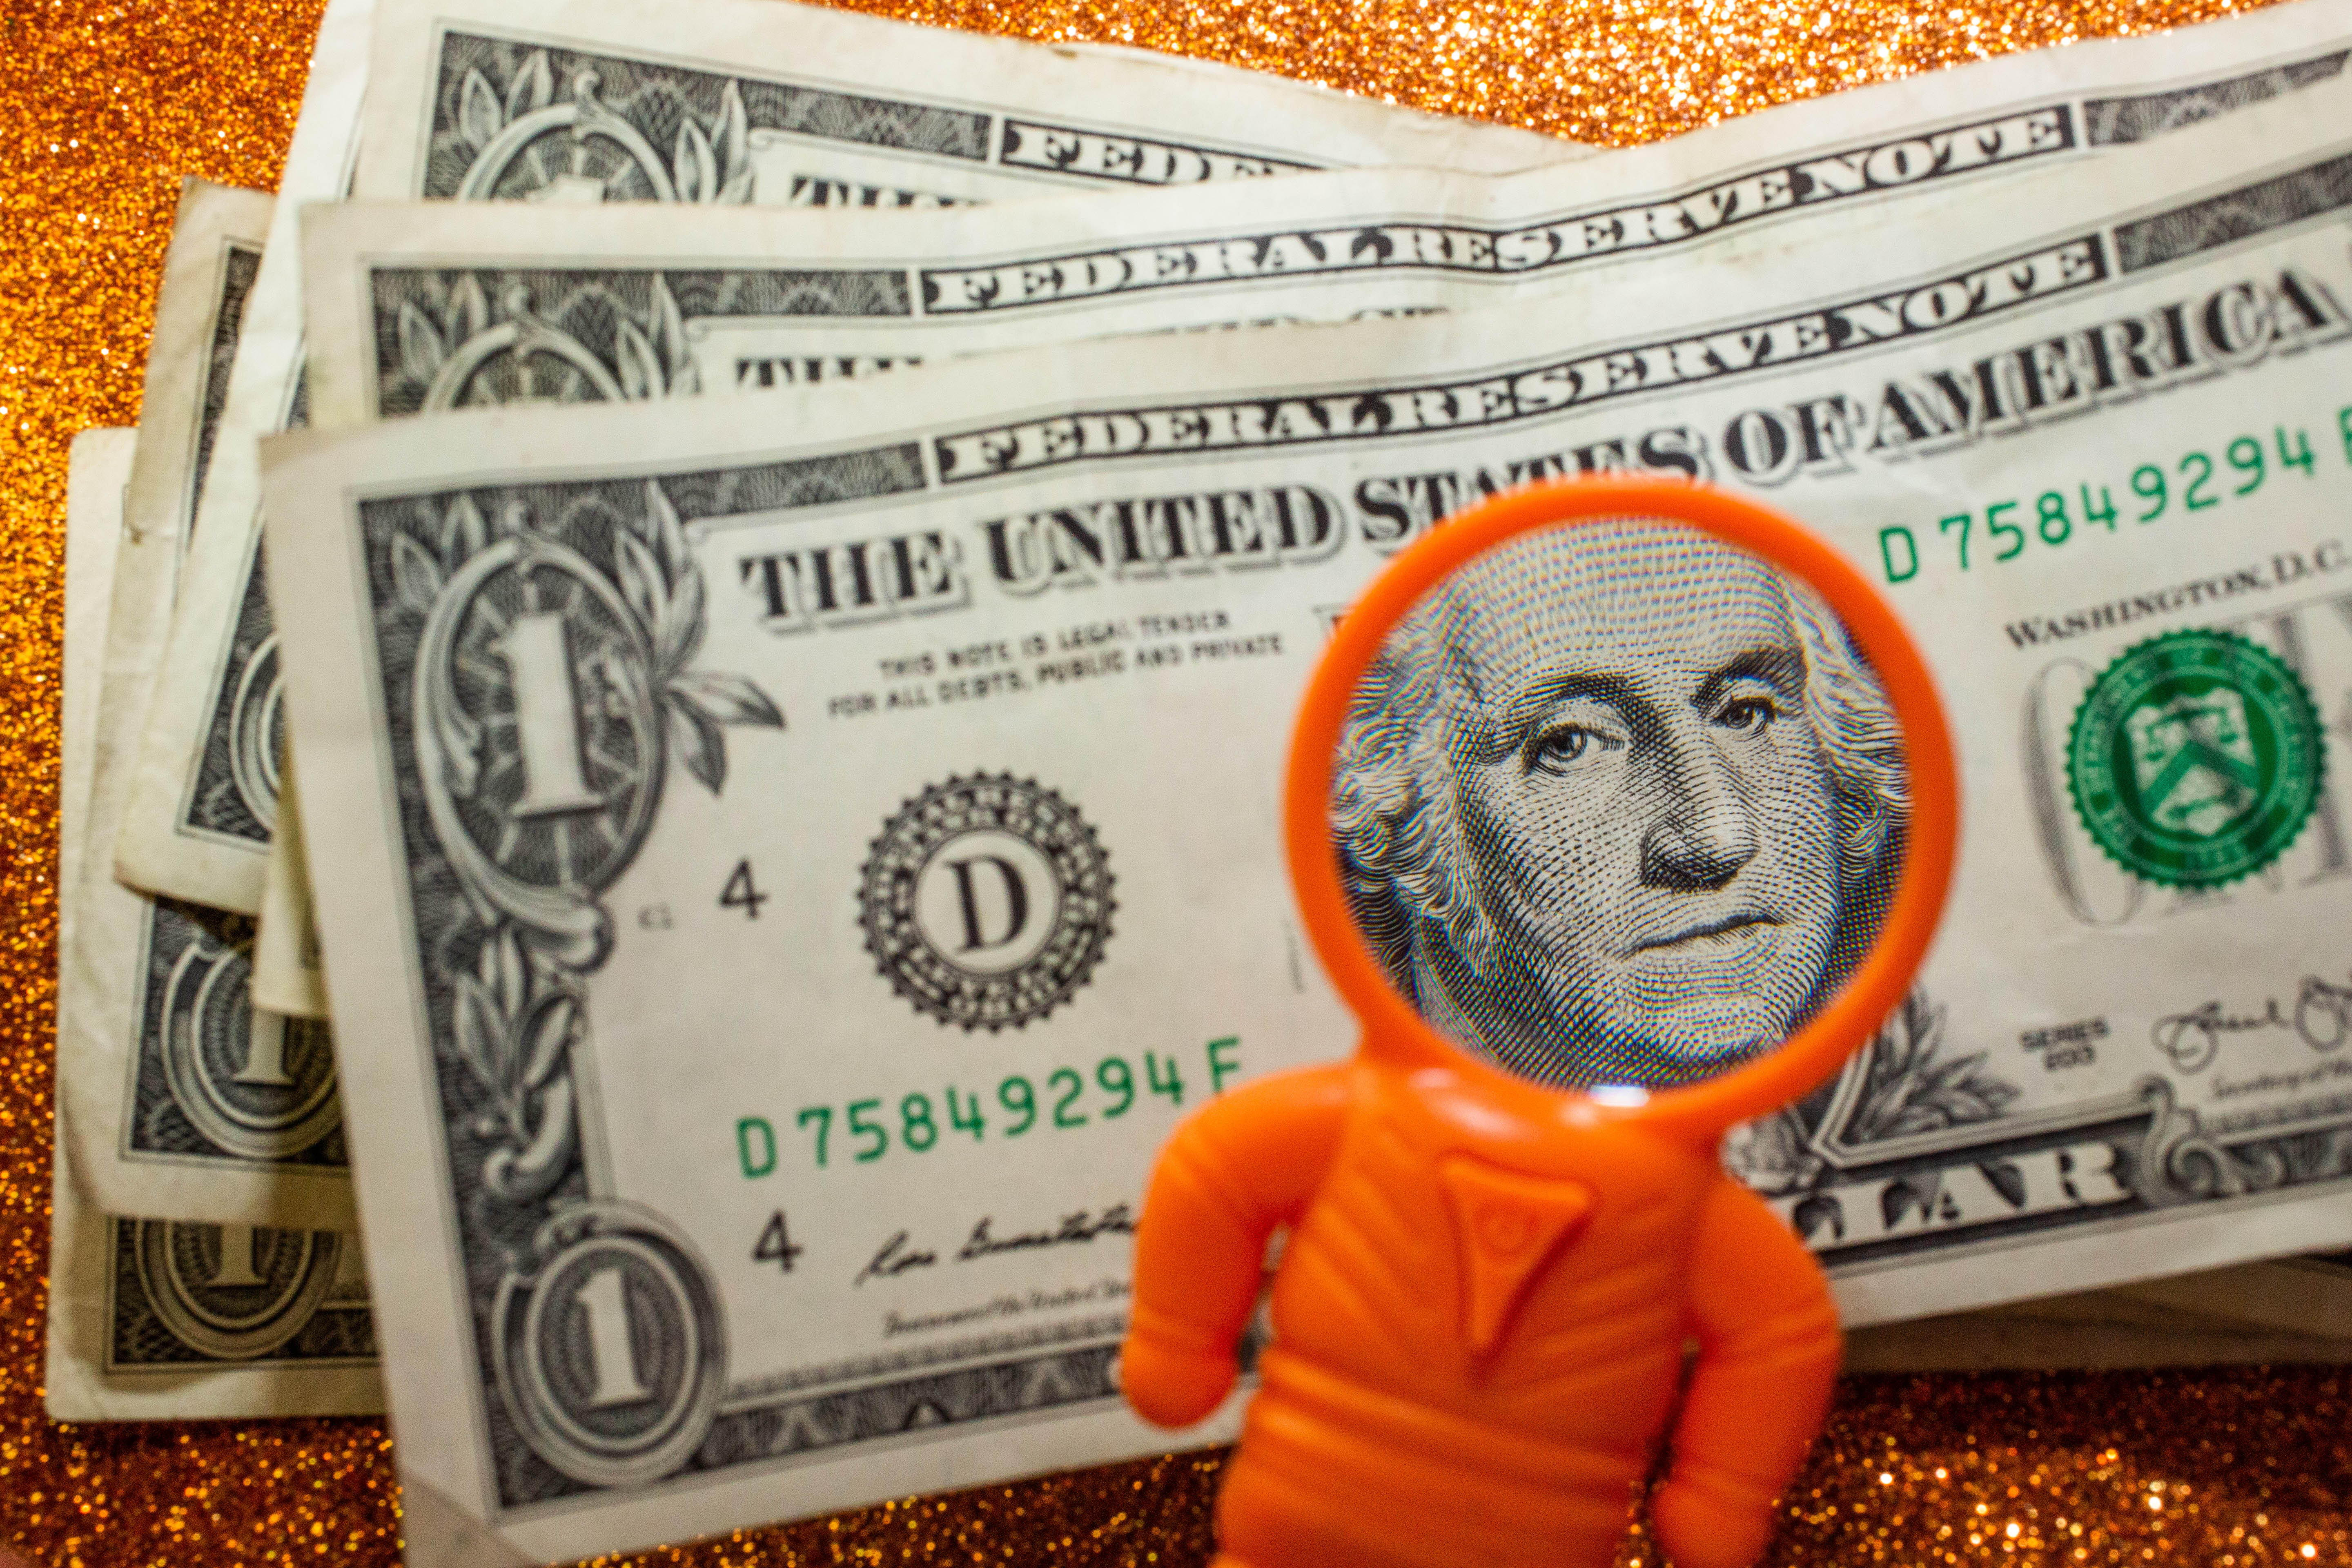 002-cash-stimulus-child-tax-credit-3600-calculator-cnet-2021-2020-federal-government-money-baby-family-pacifier-sippy